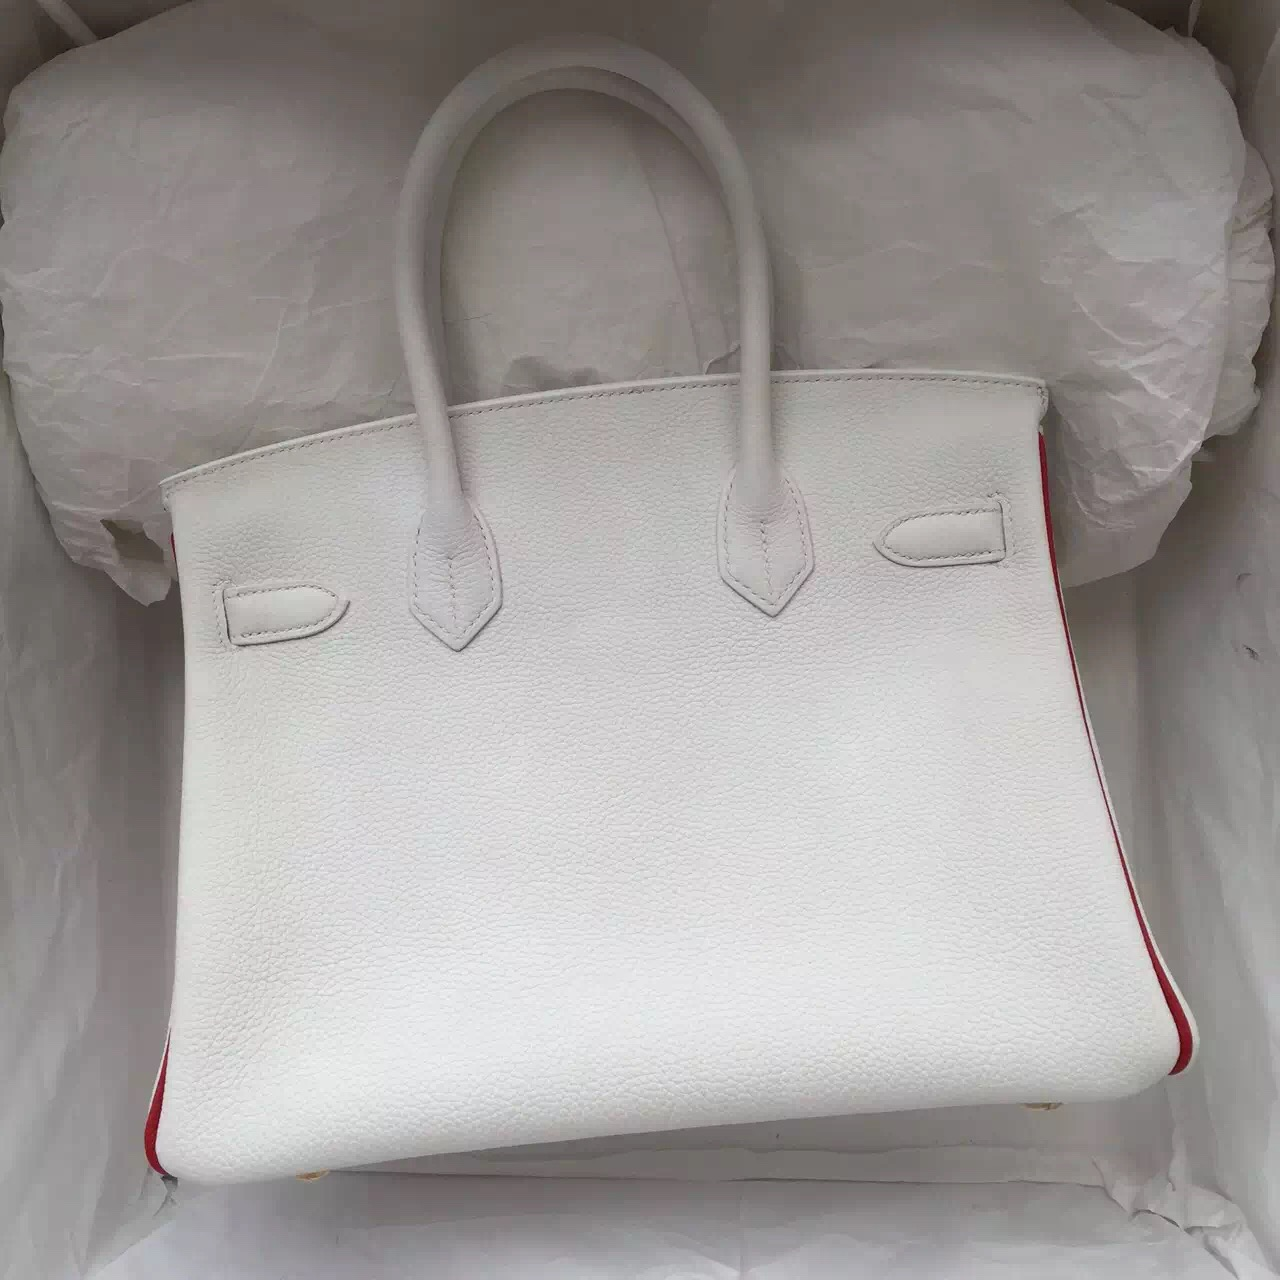 Discount Hermes Birkin 30cm White & Q5 Chinese Red Togo Calfskin Leather Ladies' Handbag